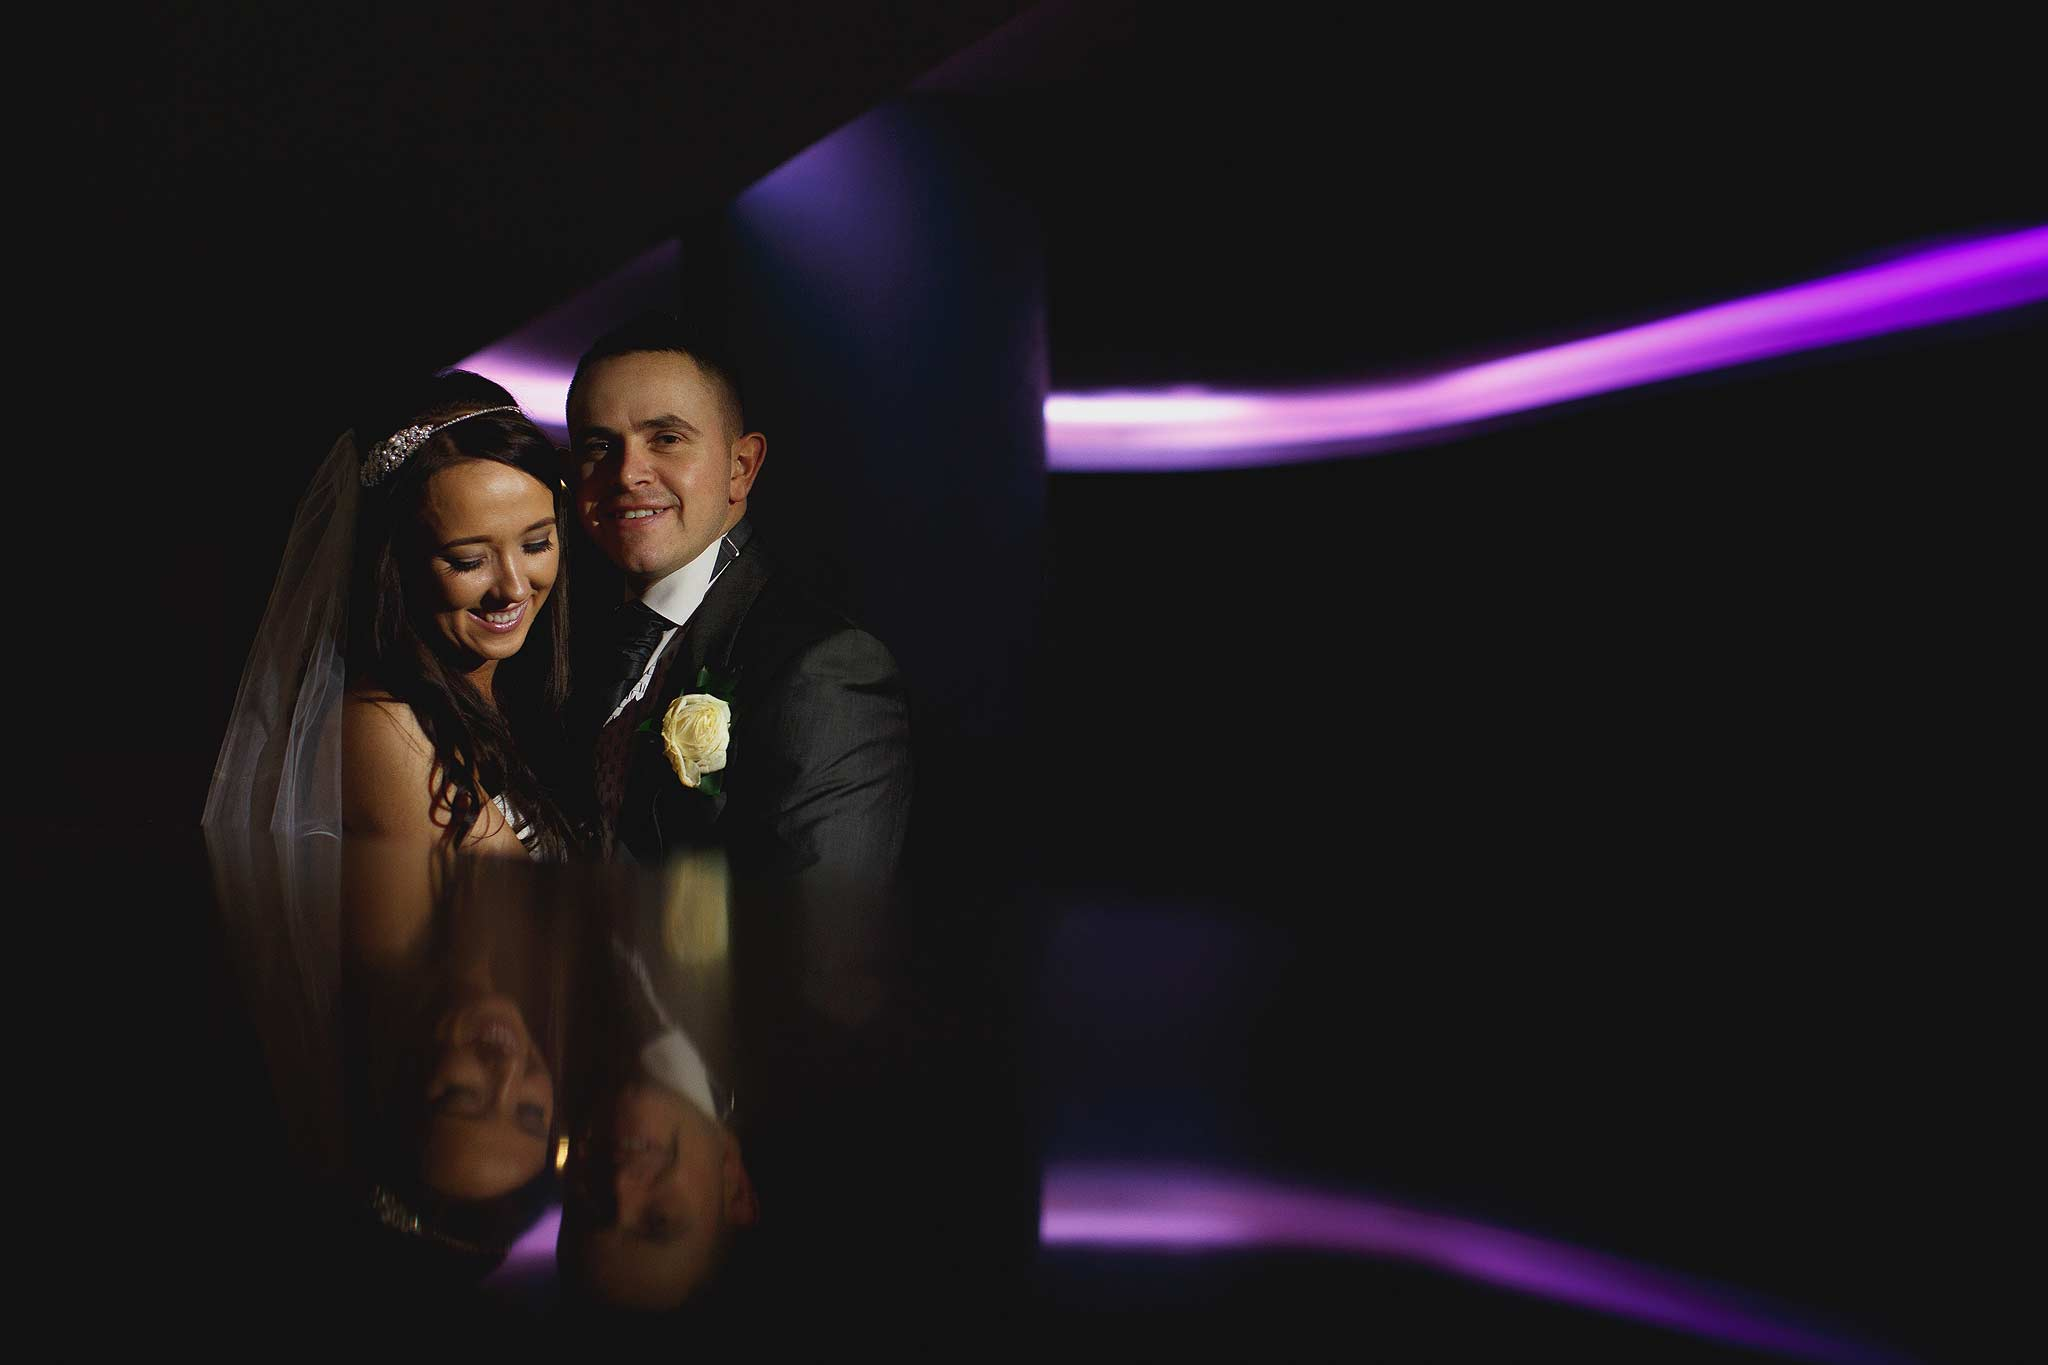 futuristic photograph of a bride and groom with neon lighting